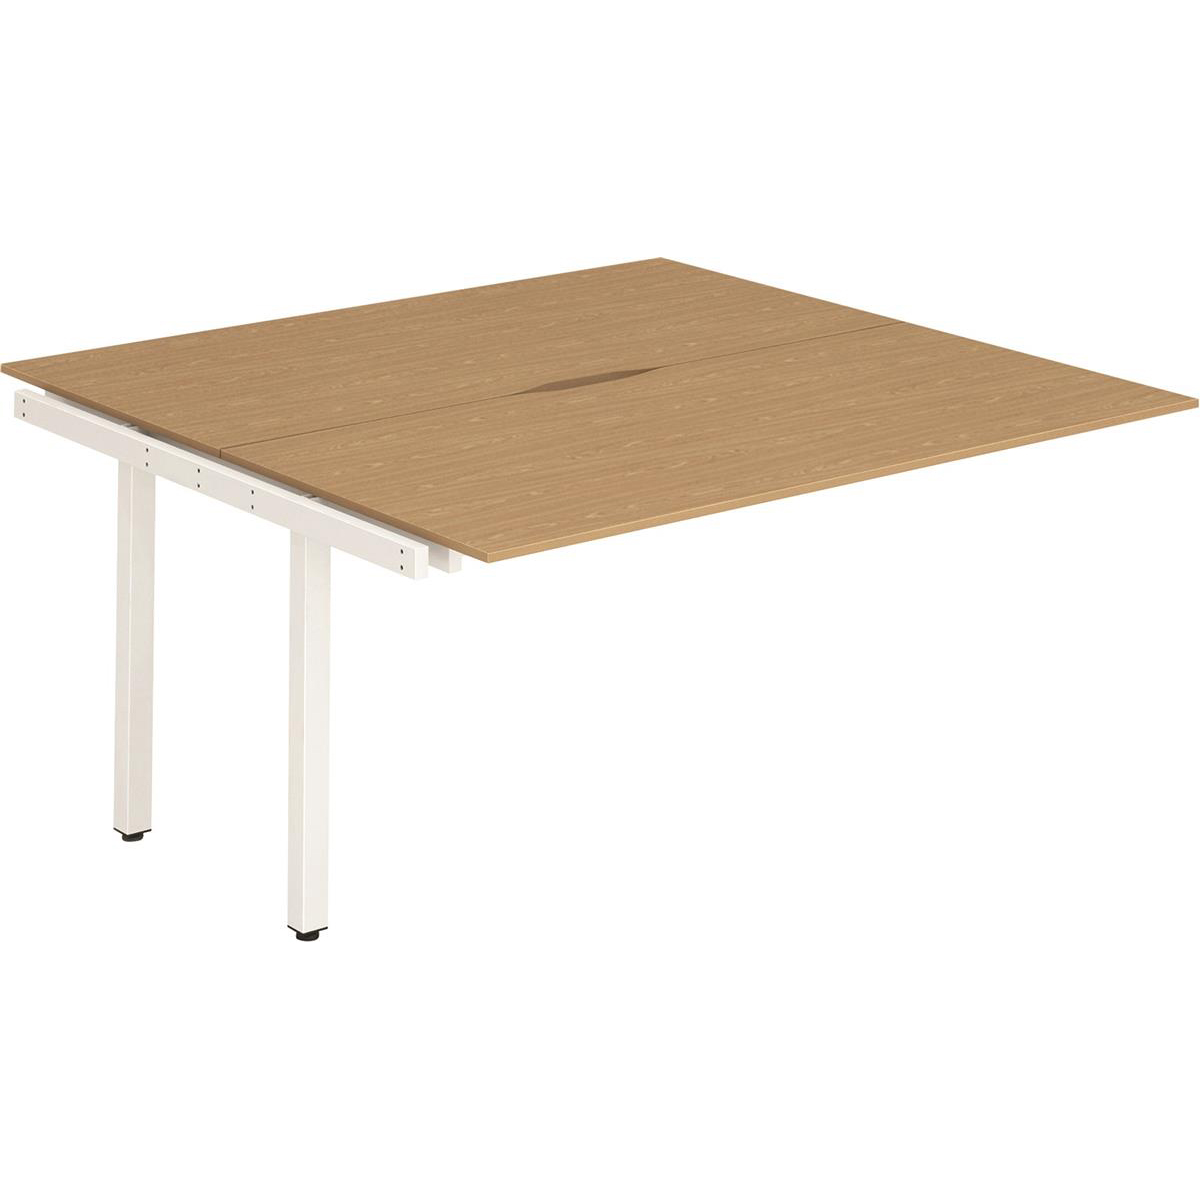 Trexus Bench Desk Double Extension Back to Back Configuration White Leg 1200x1600mm Oak Ref BE198